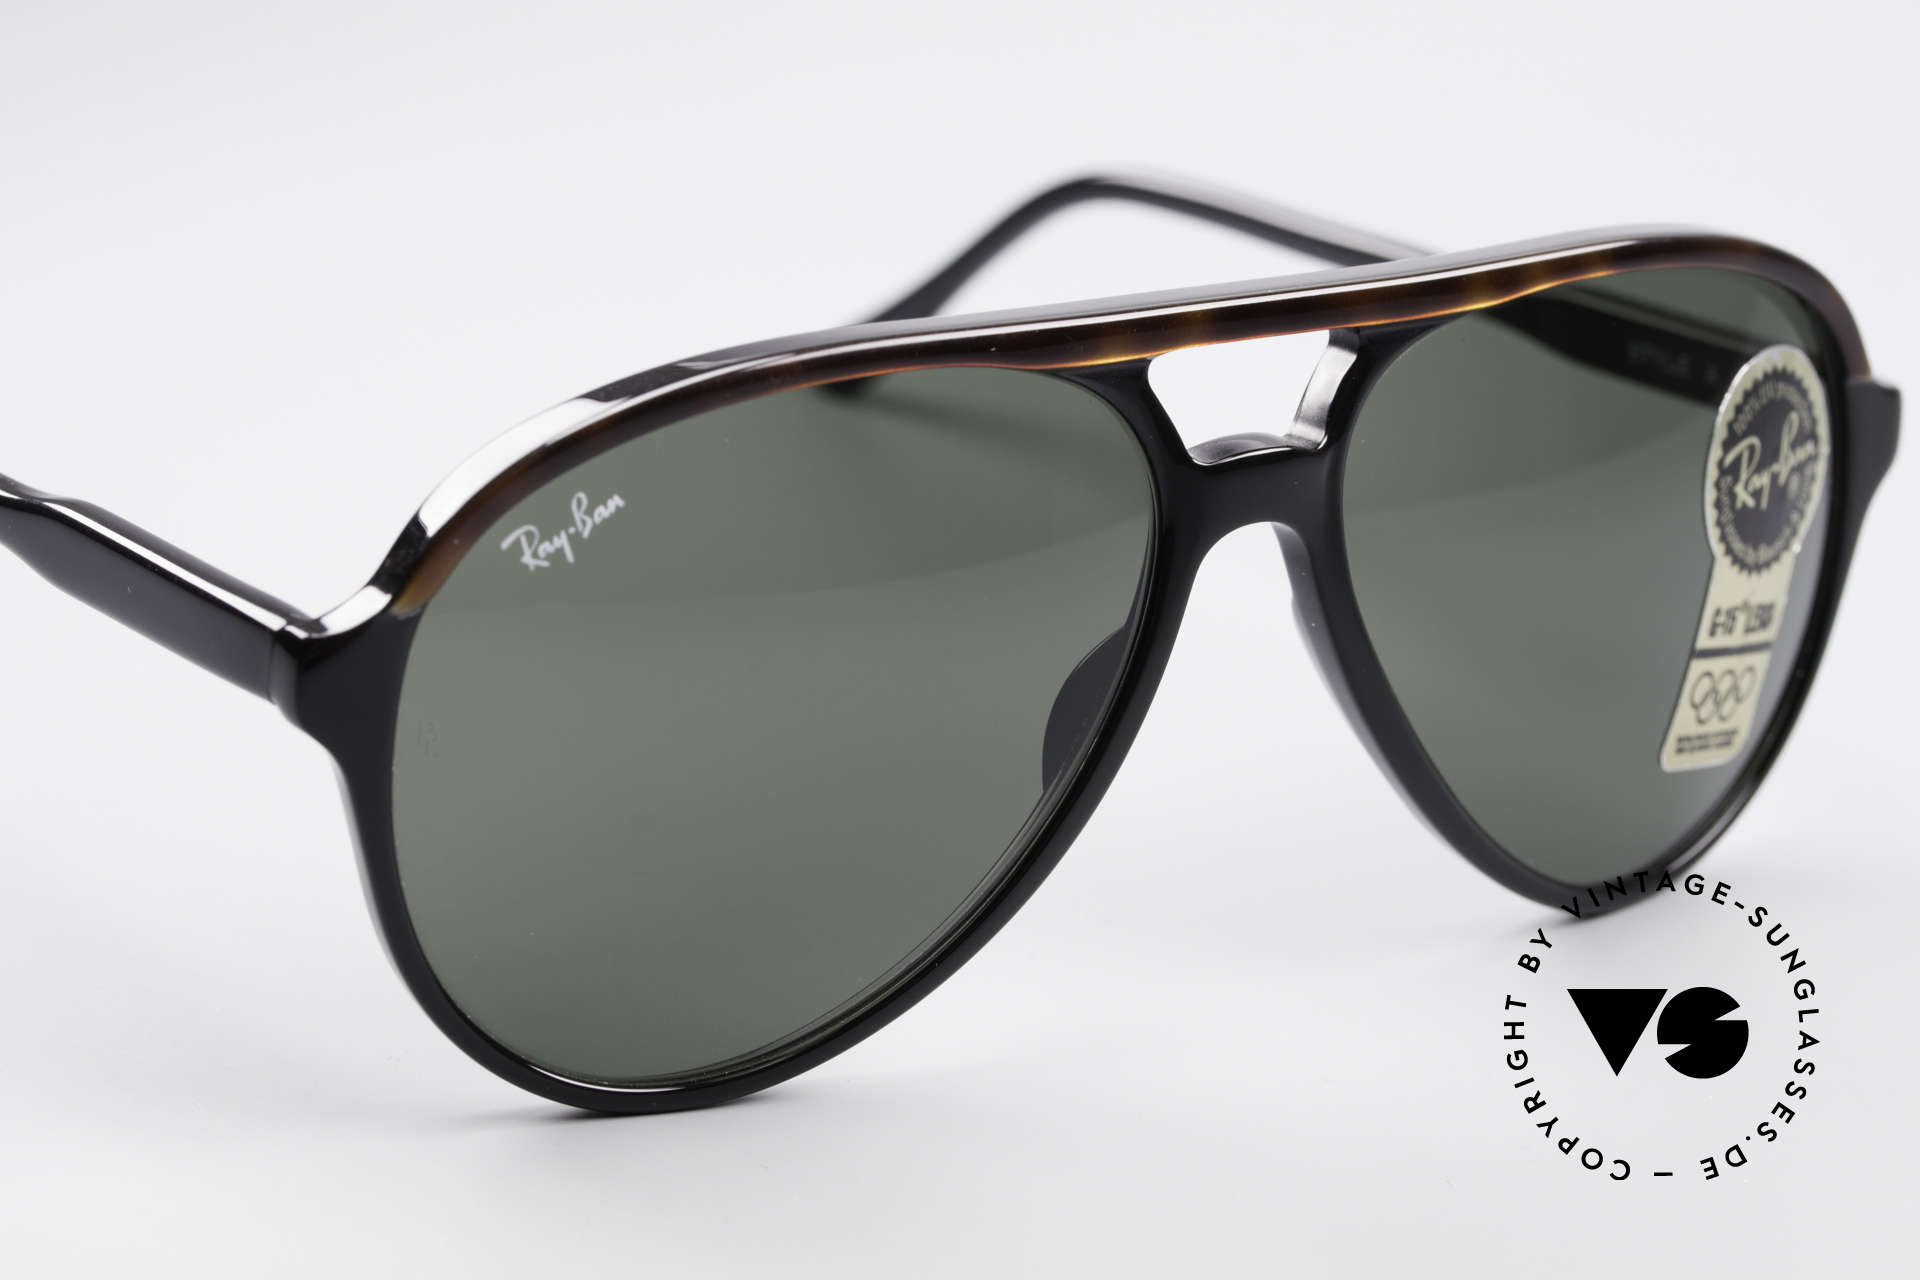 Ray Ban Traditionals Style A Old Aviator Sunglasses USA, NO RETRO shades, but a rare Bausch&Lomb original, Made for Men